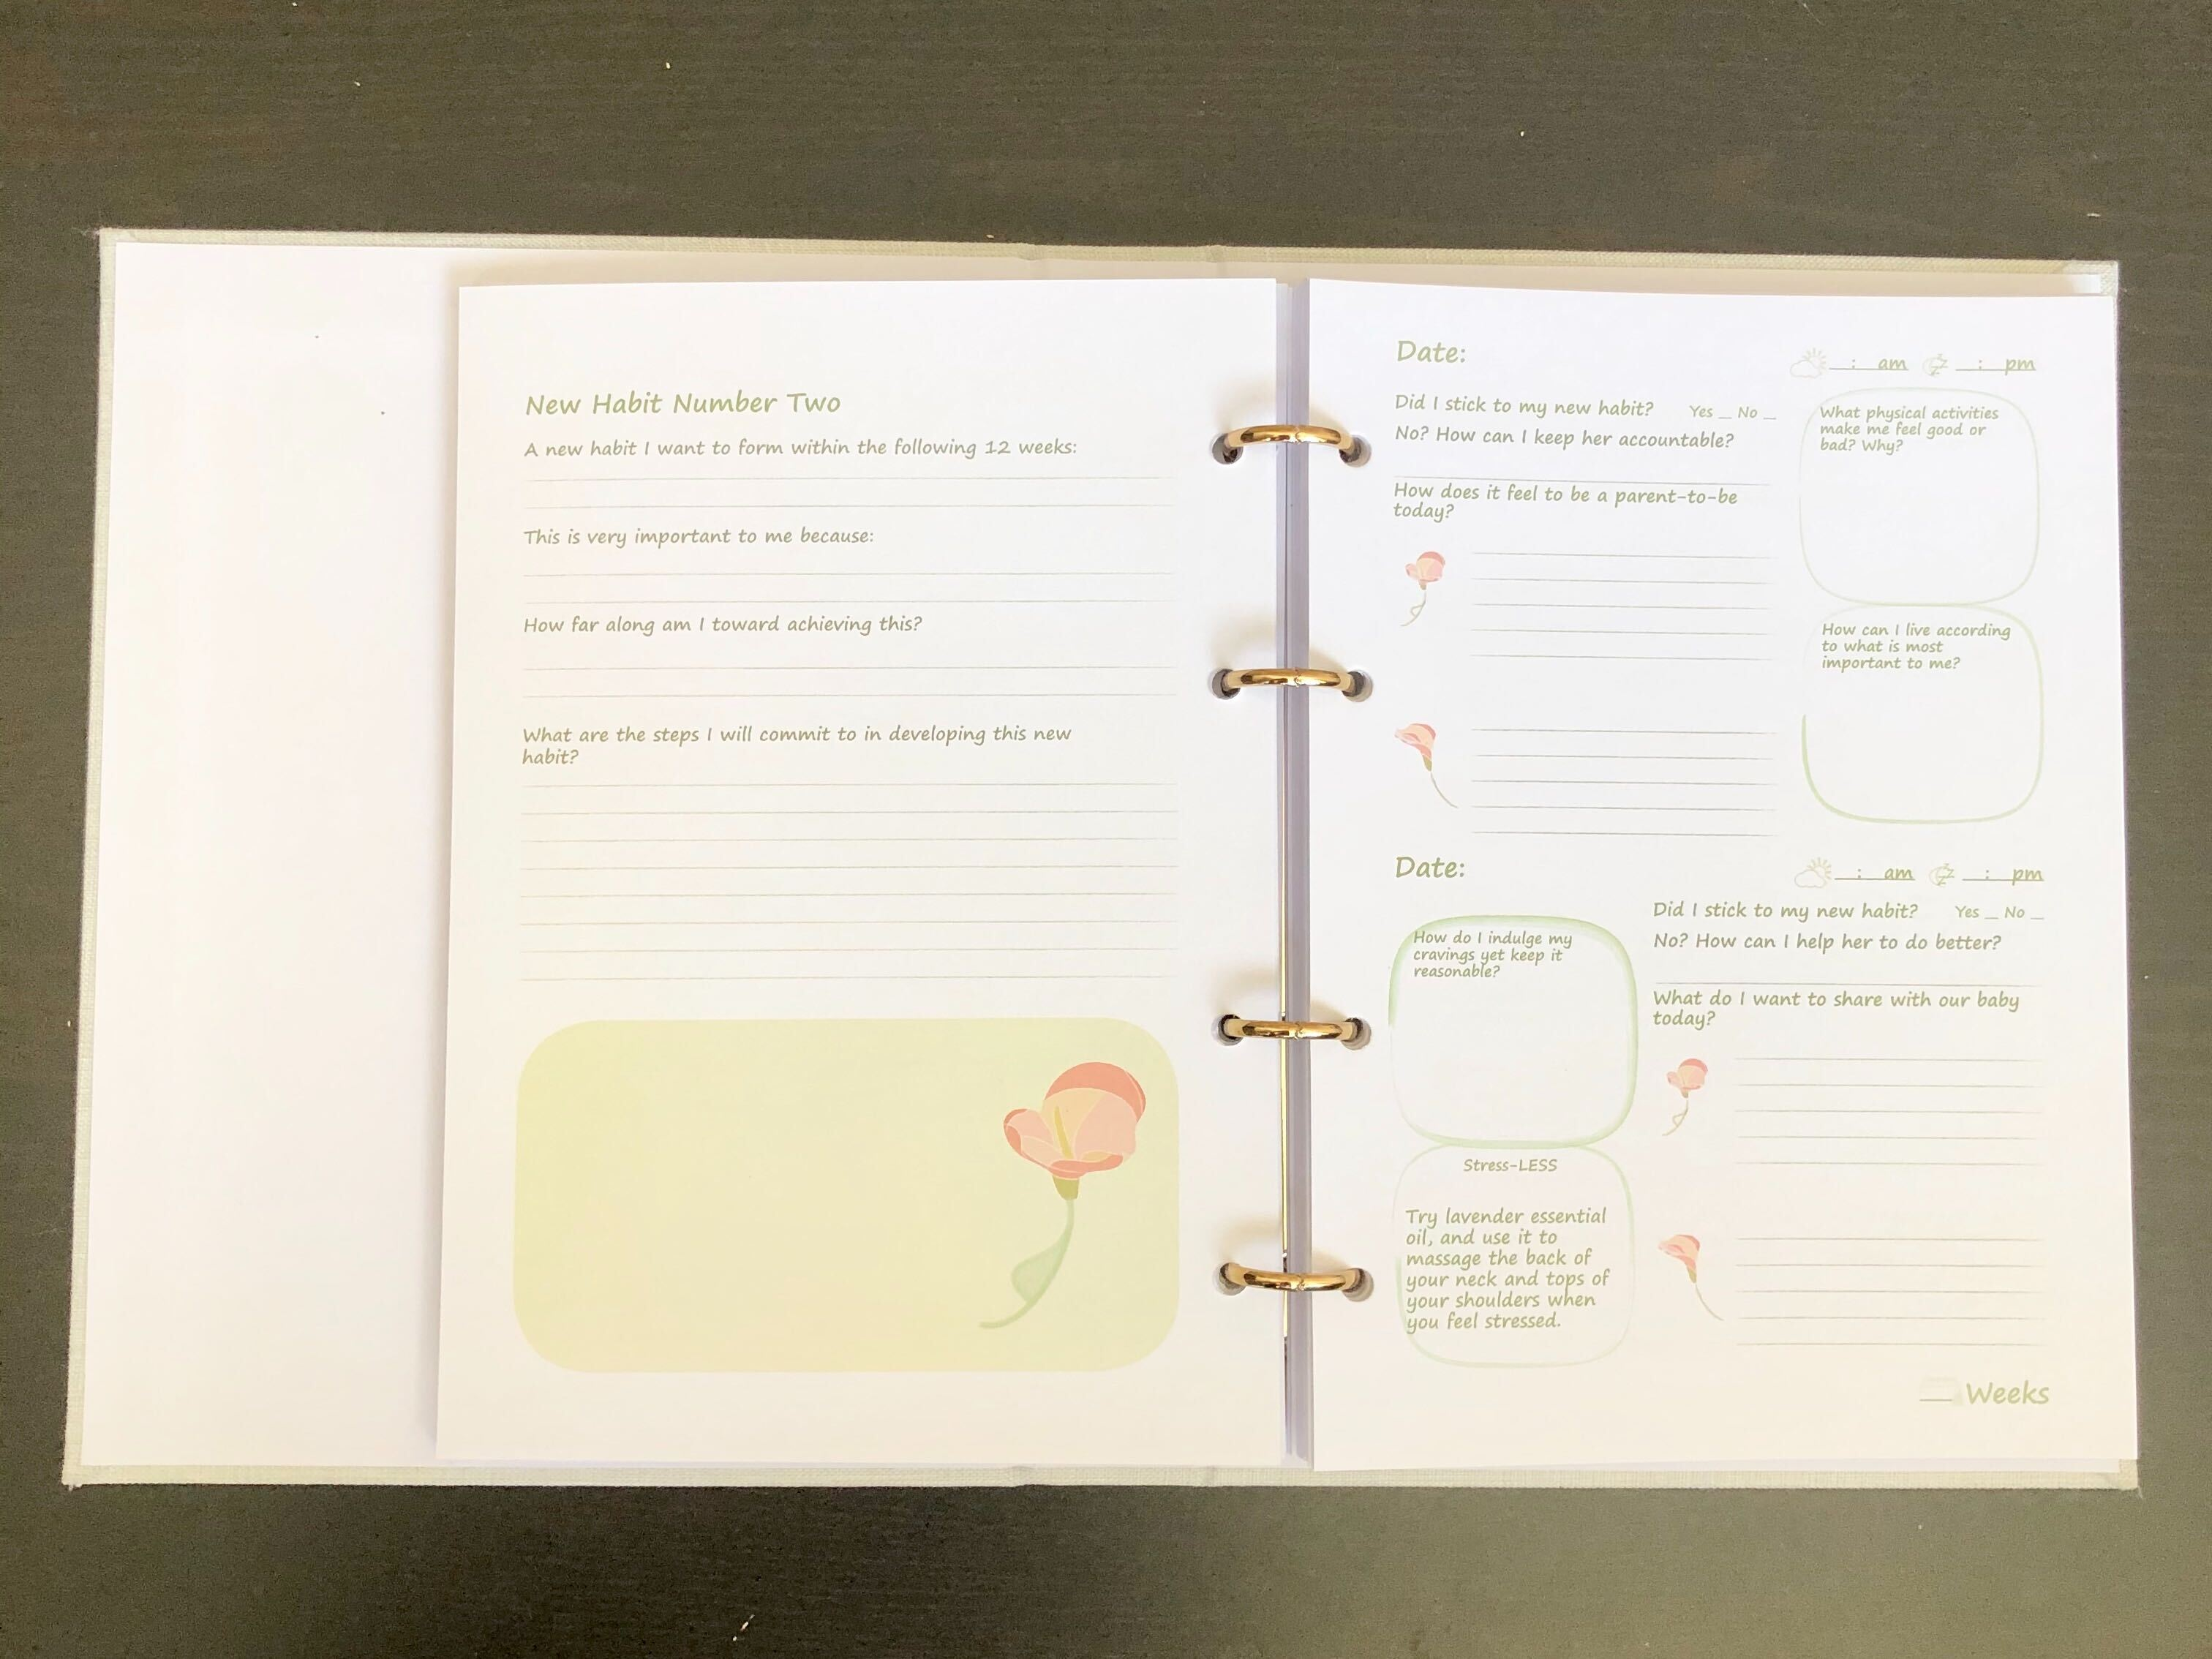 Our pregnancy - a mindful journal for couples habit curator and daily spread page